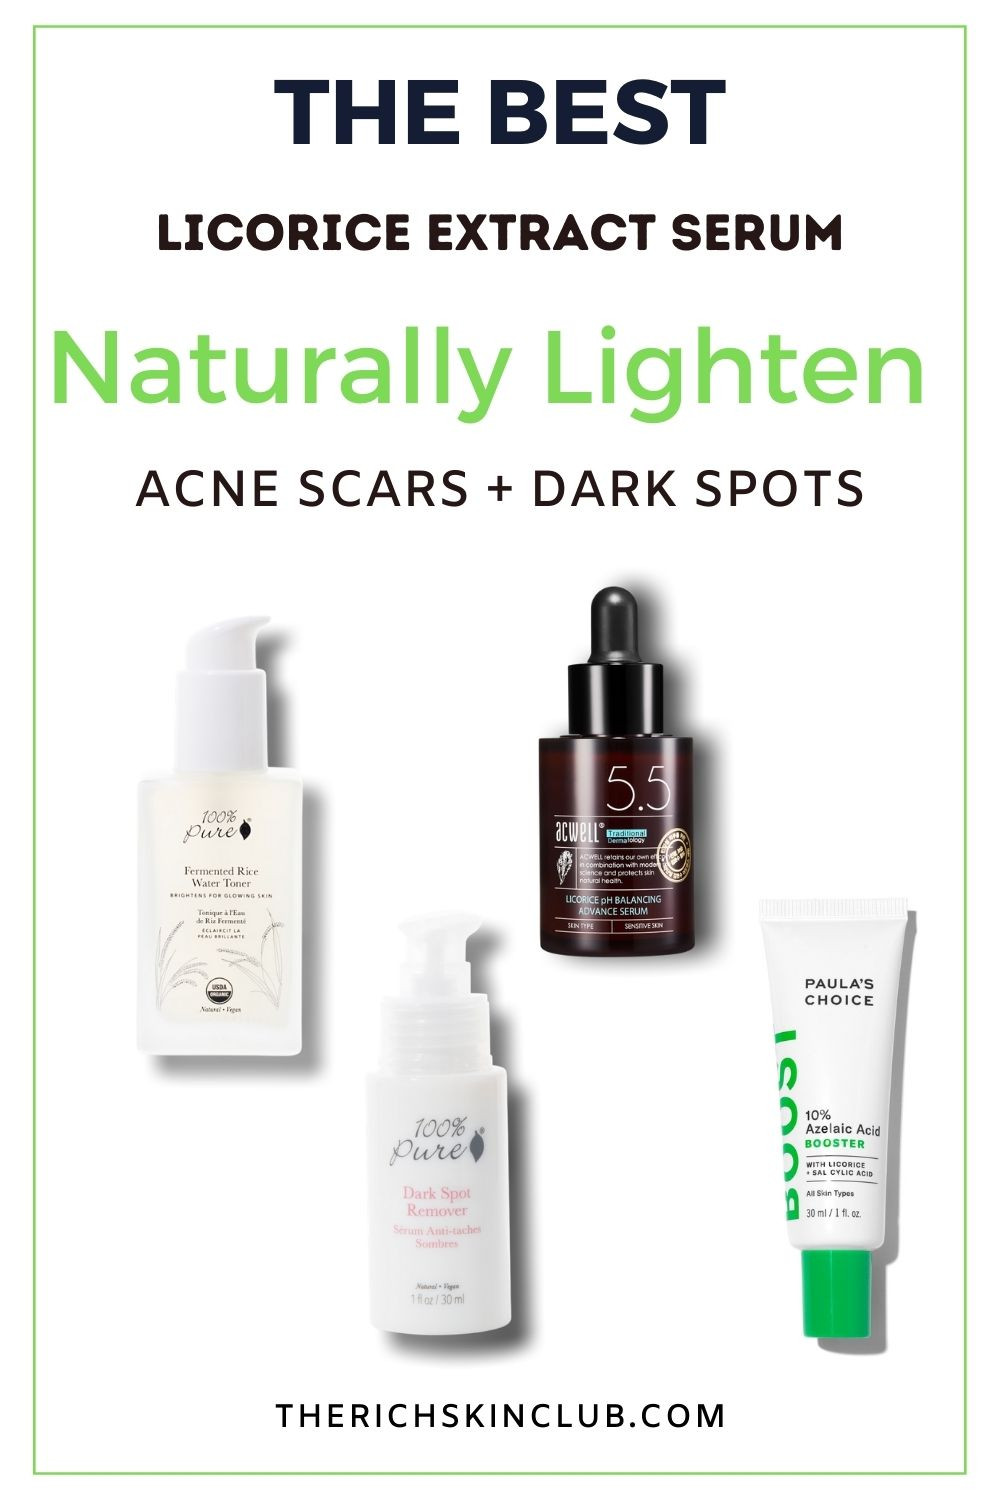 Liquorice Root Extract is An All Natural Alternative to Hydroquinone for Brightening The Skin Tone. This amazing natural ingredient is proven to balance oily skin, reduce inflammation and prevent dark marks and hyperpigmentation forming after sun exposure. Best Licorice Root Serums #licoricerootbenefitsforskin #licoriceextractserum #howtolightendarkmarks